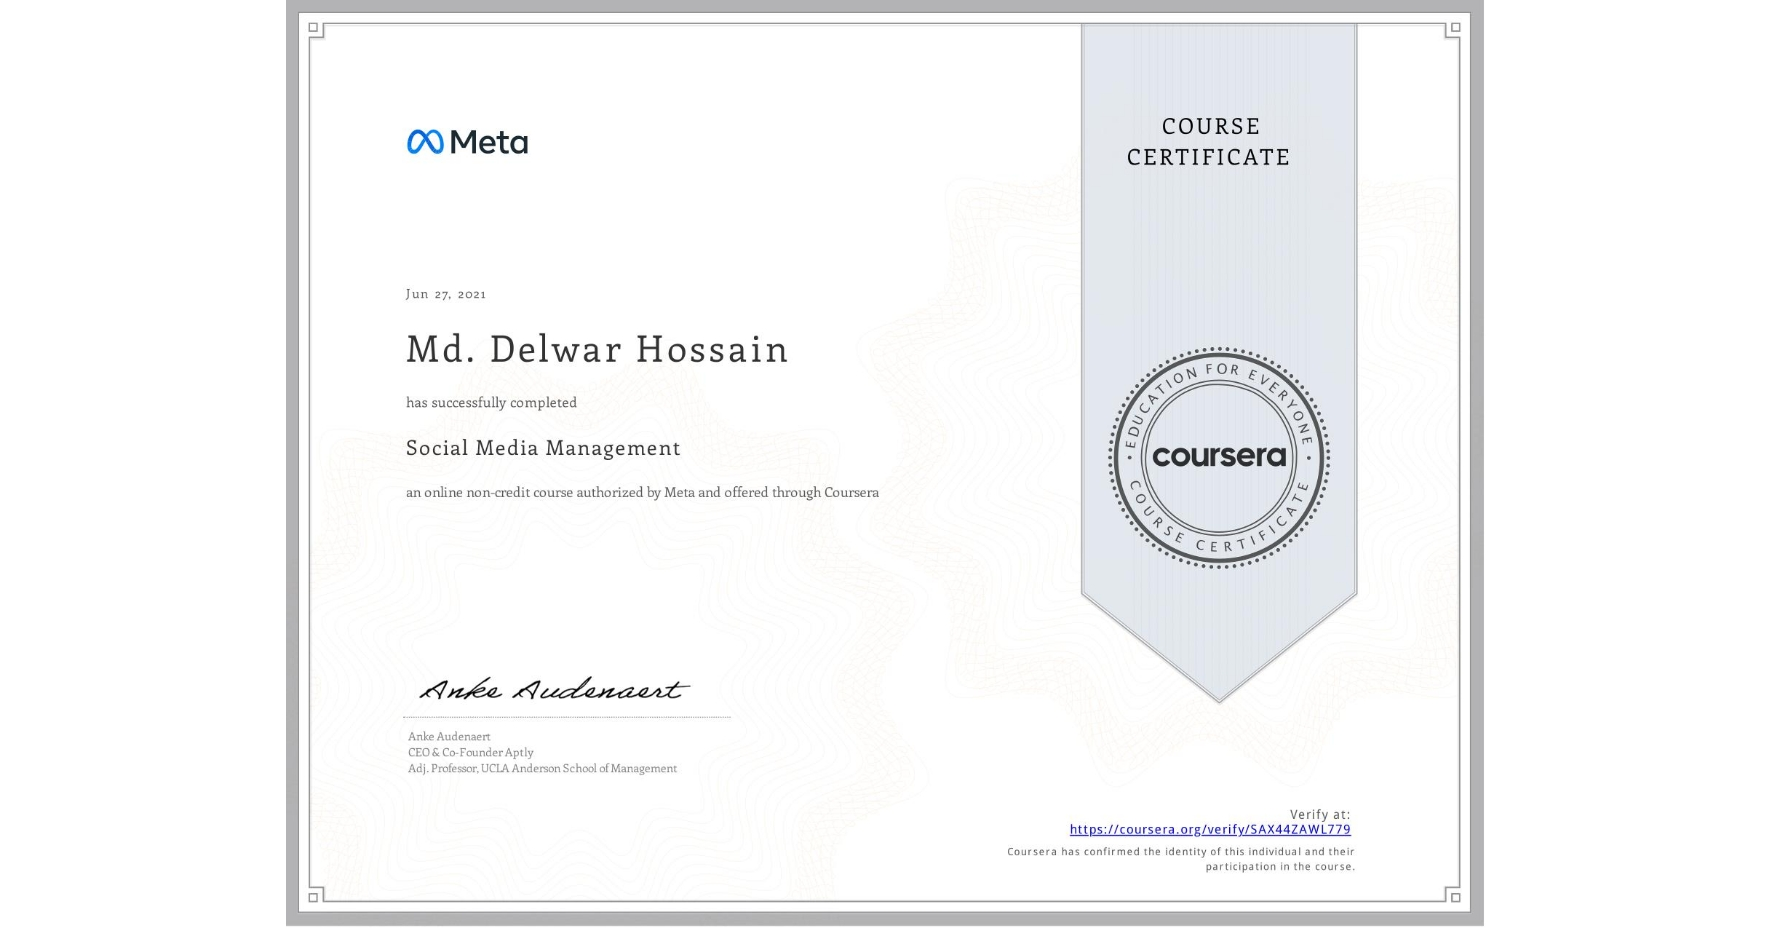 View certificate for Md. Delwar  Hossain, Social Media Management , an online non-credit course authorized by Facebook and offered through Coursera